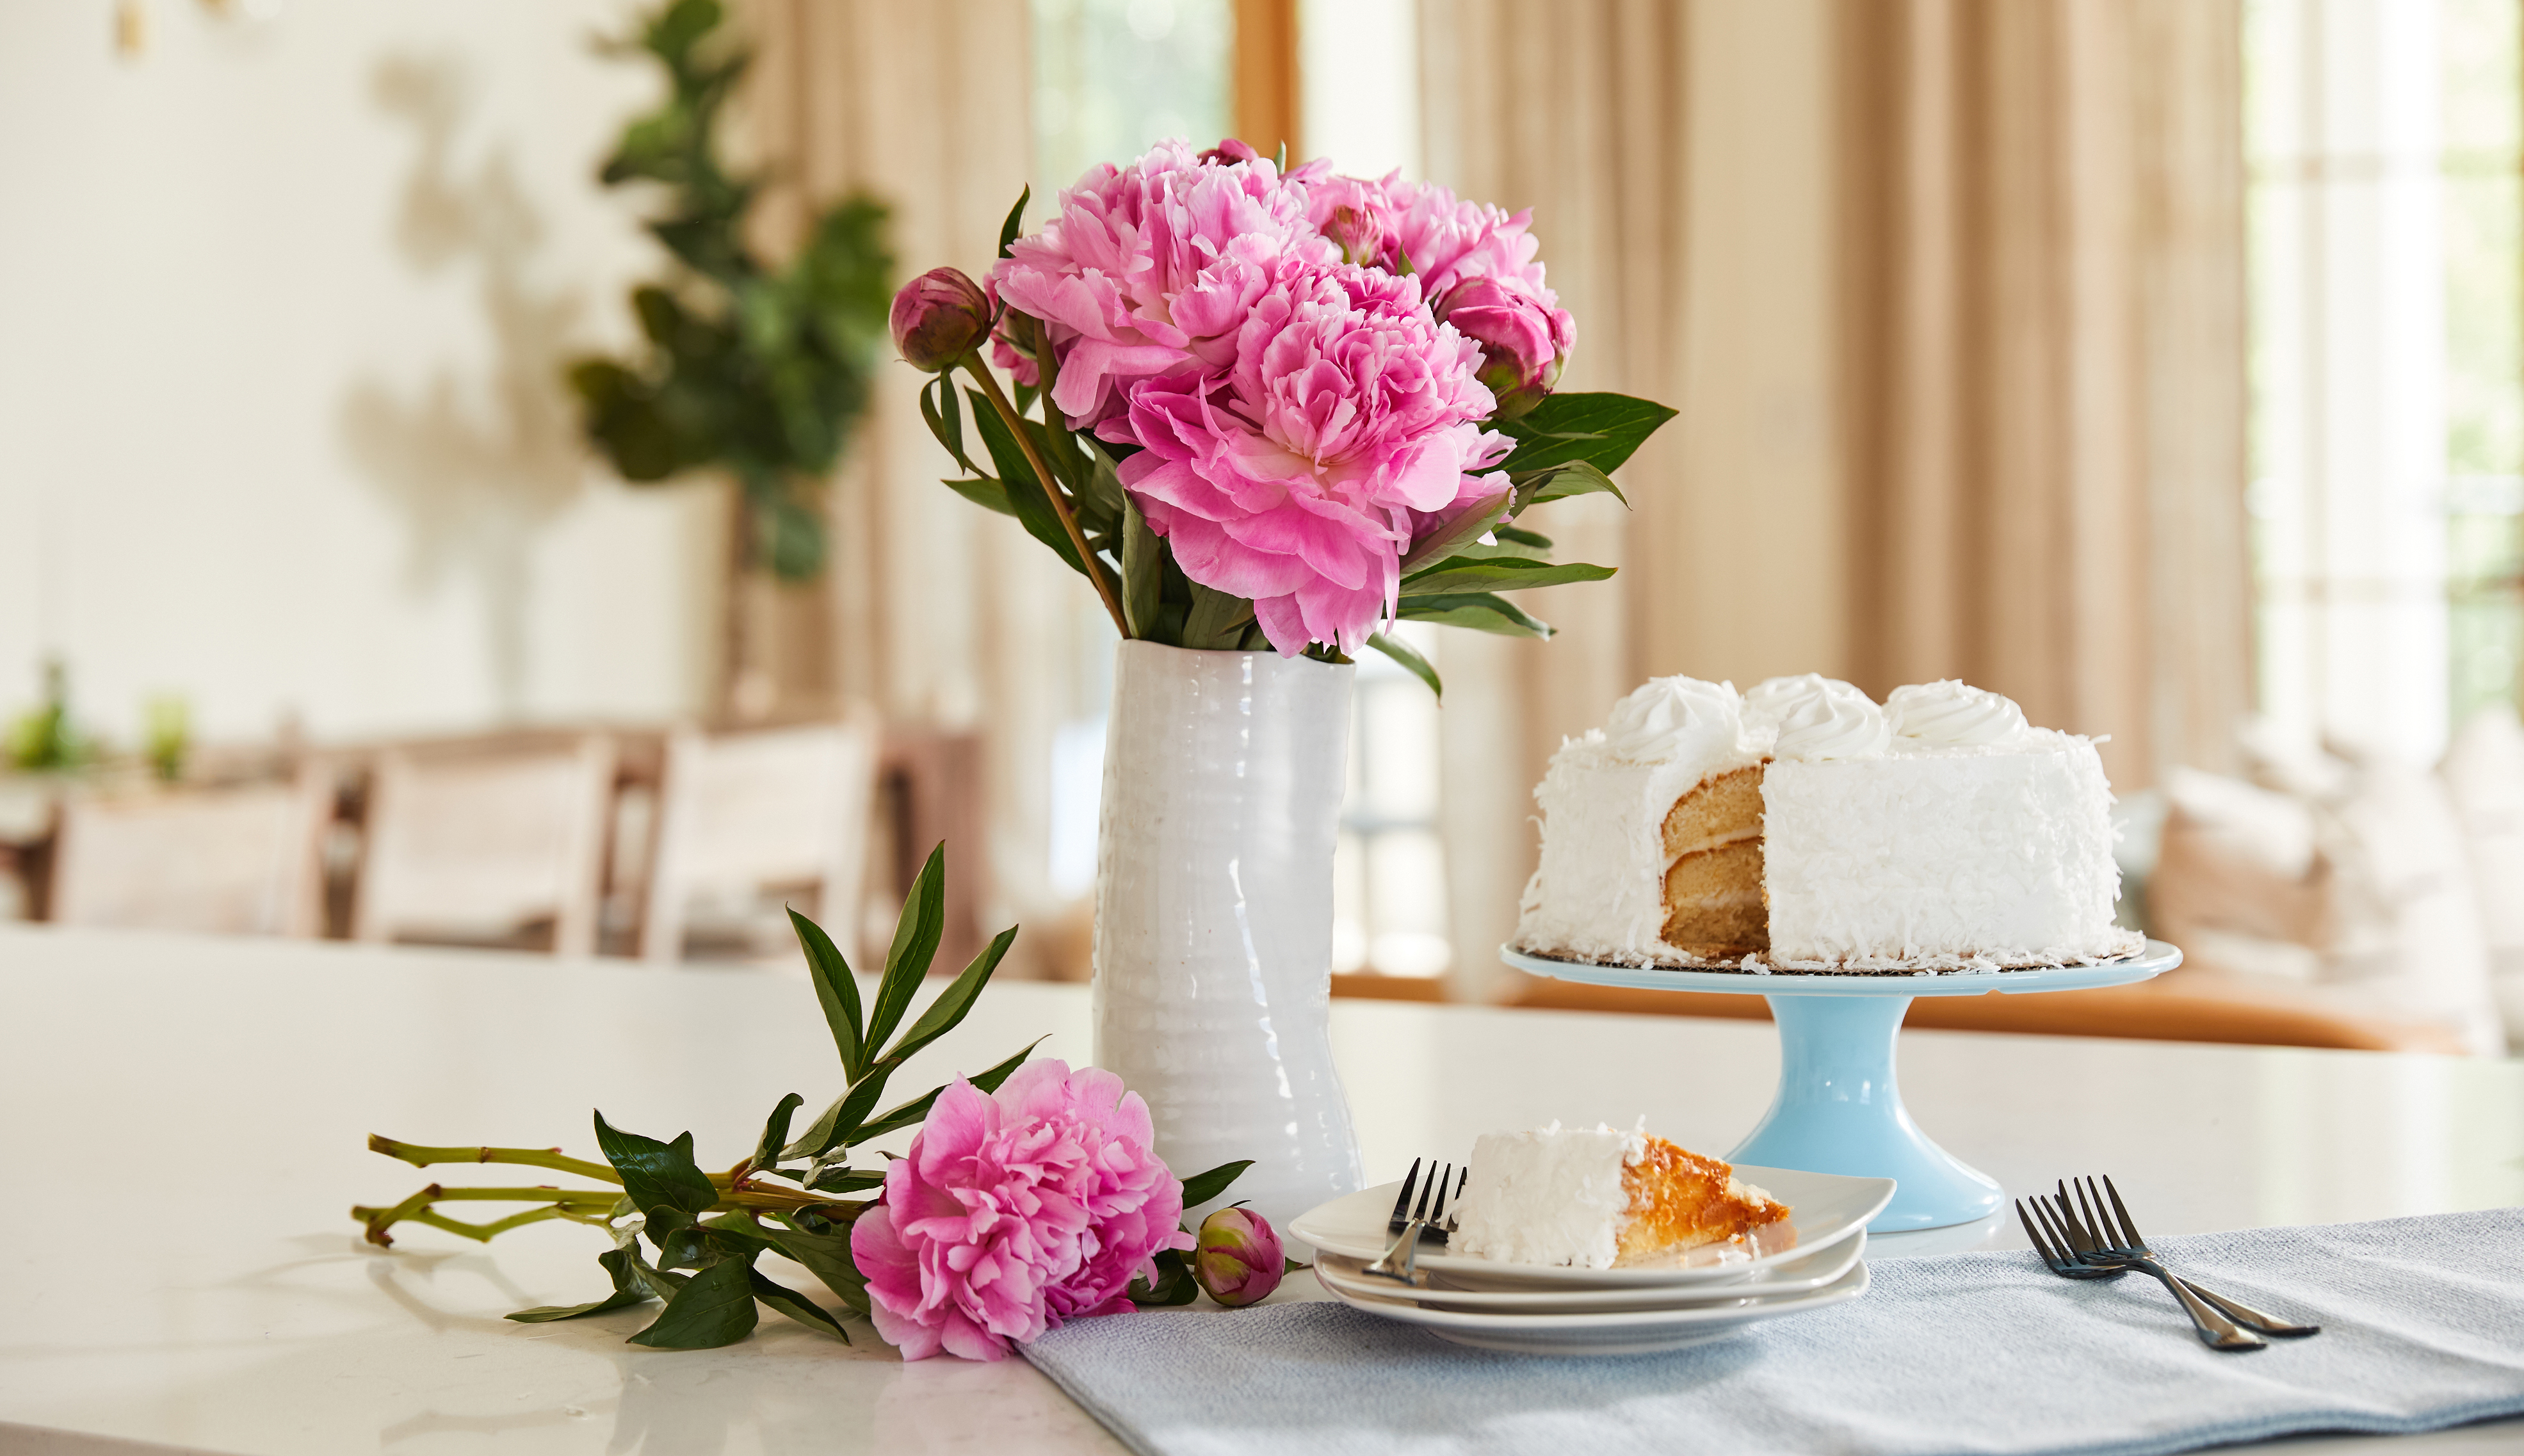 Bouquet of pink peony flowers and white cake on a countertop.